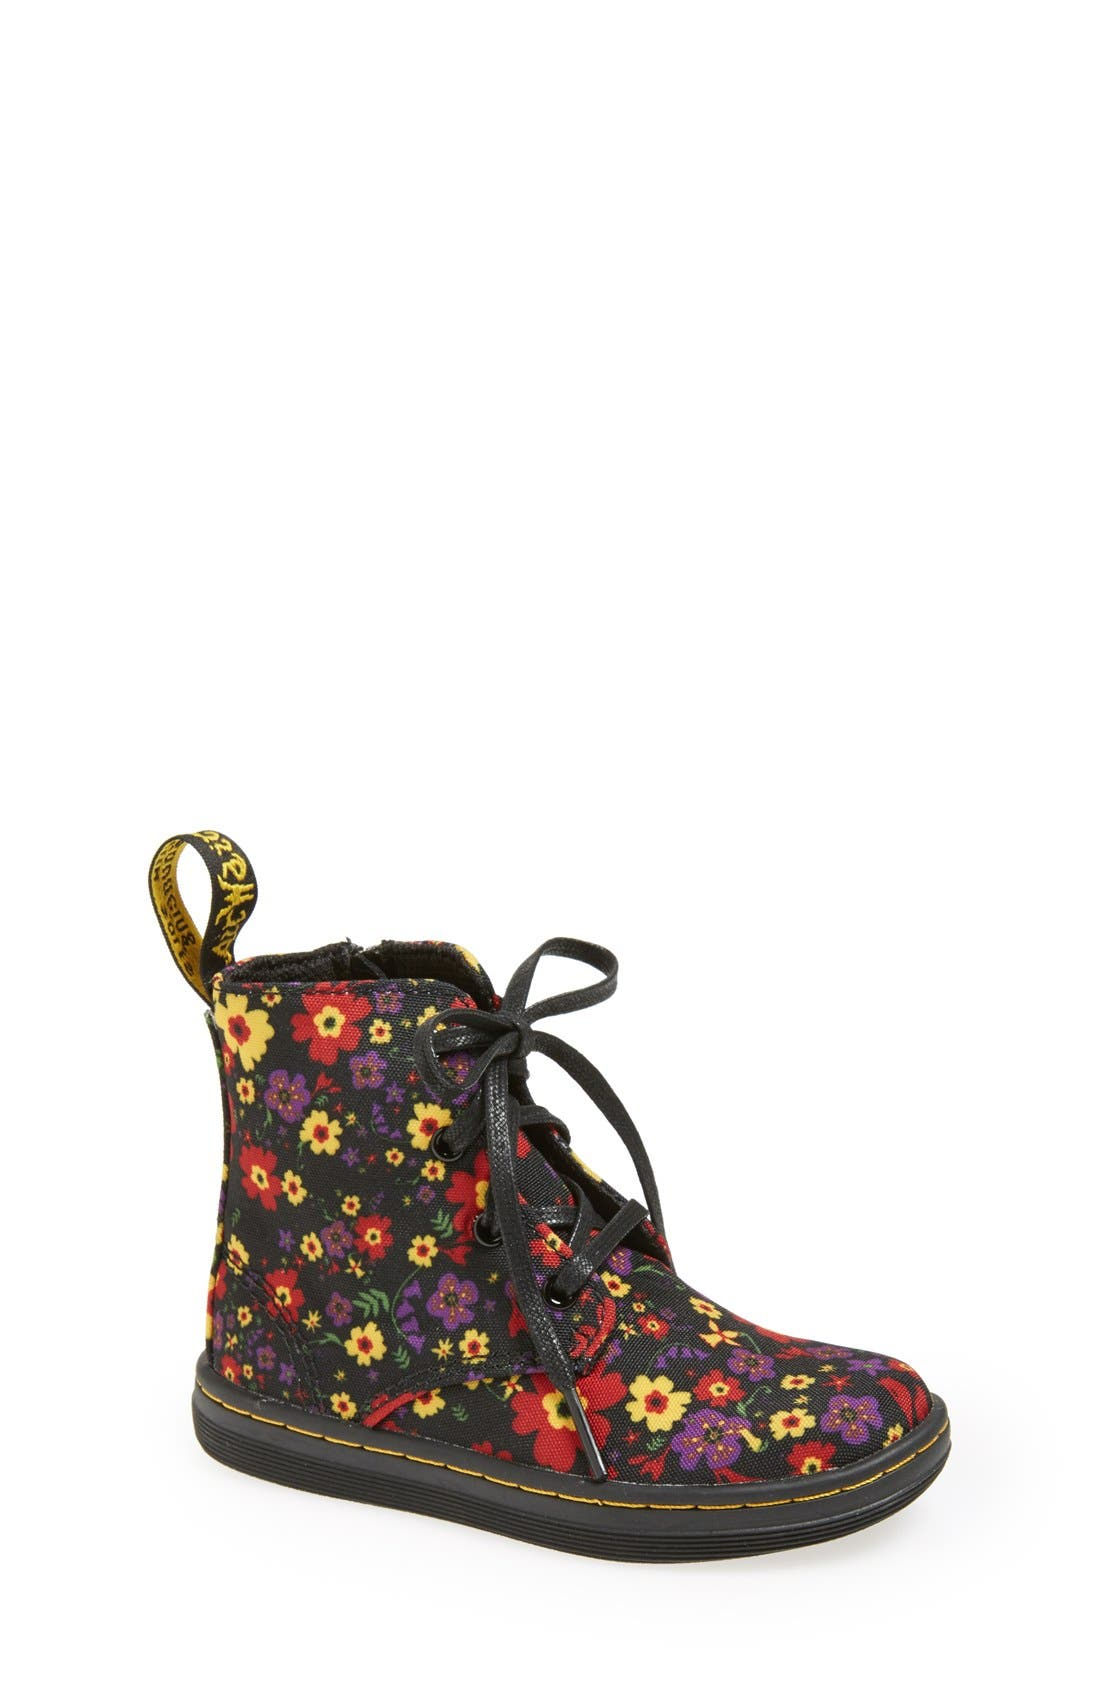 Main Image - Dr. Martens 'Laney' Floral Print Canvas Boot (Walker & Toddler)